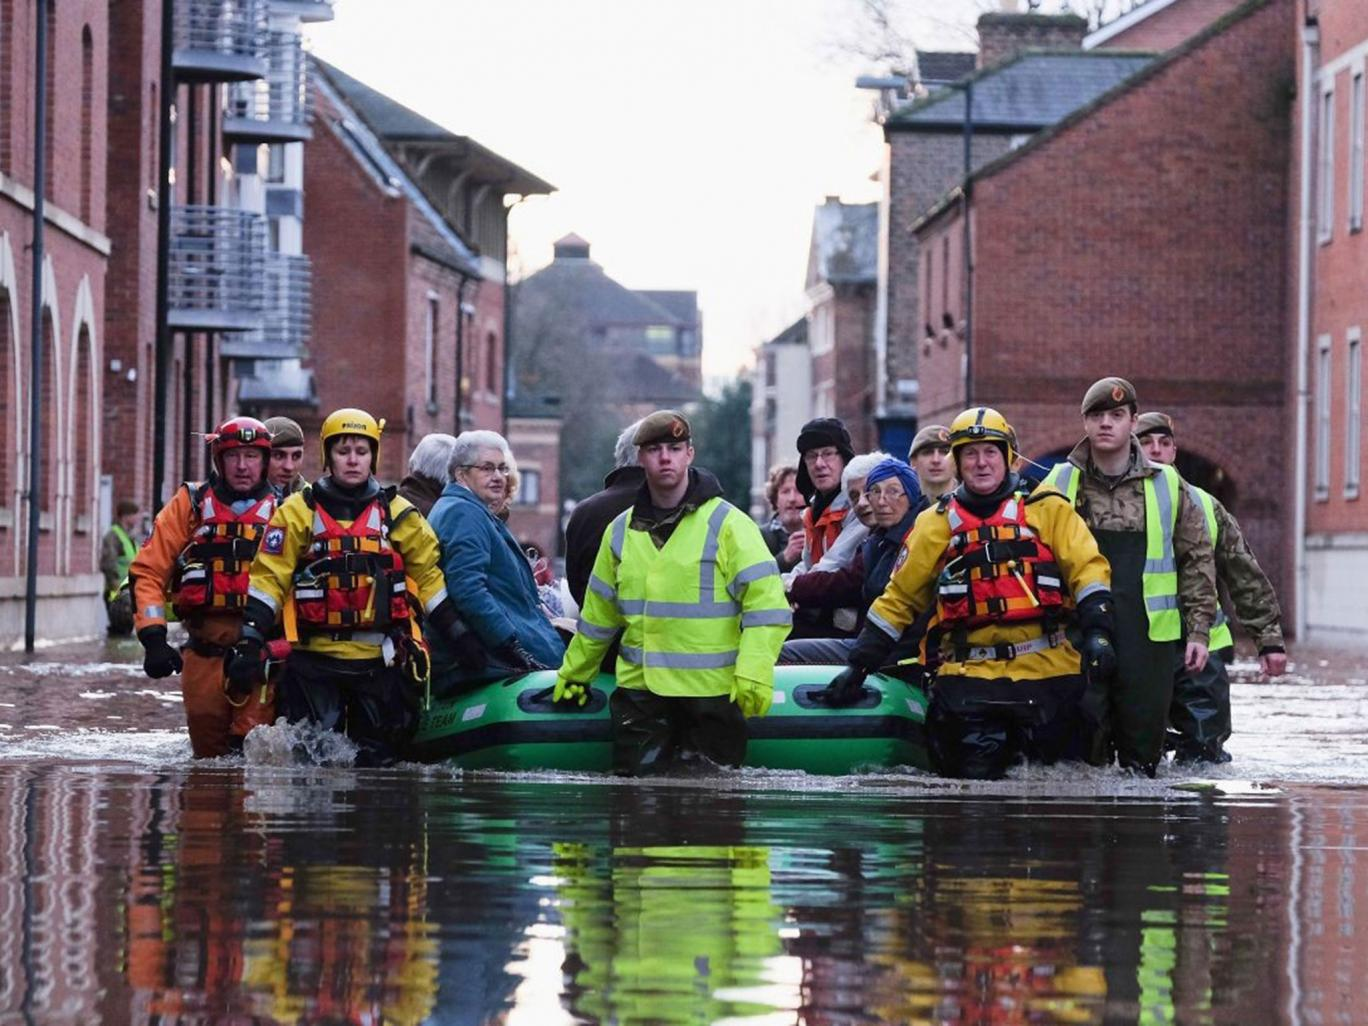 Rescuers using an inflatable boat